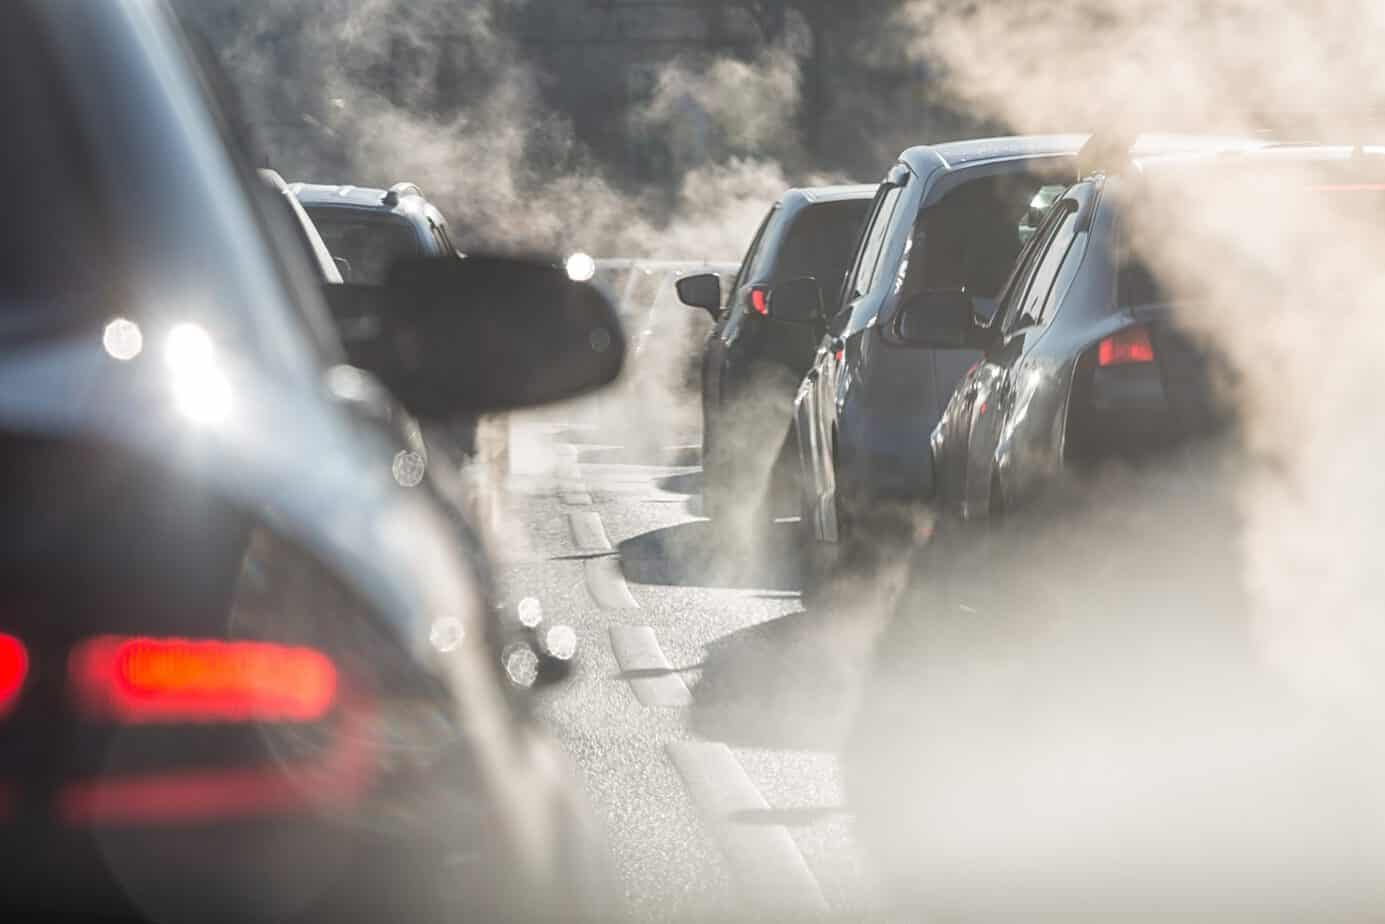 Car traffic exhaust pollution and smog